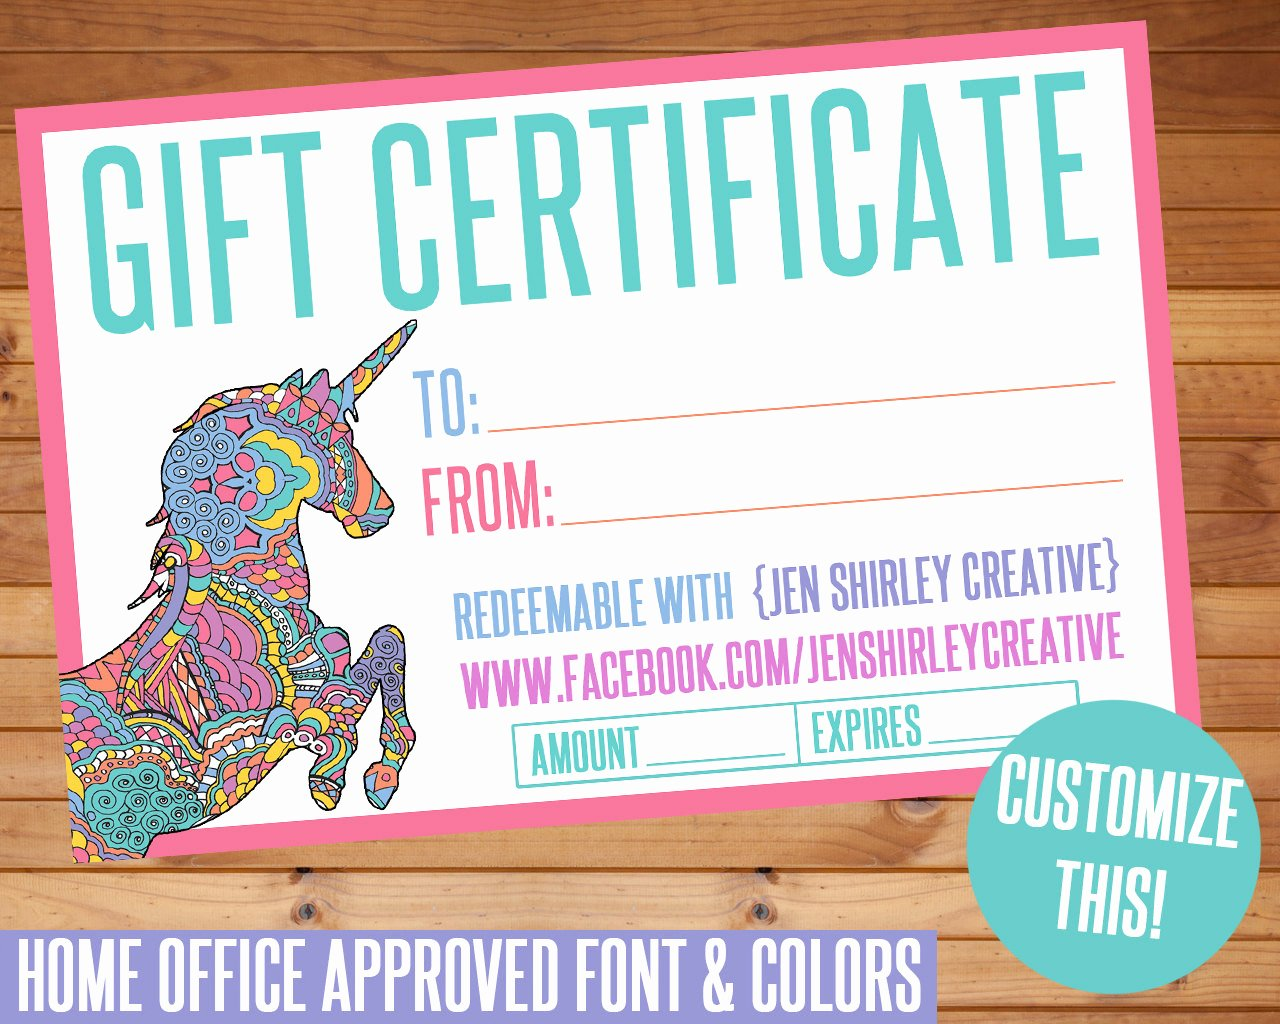 Lularoe Business Card Template Luxury Lularoe Gift Certificate Template